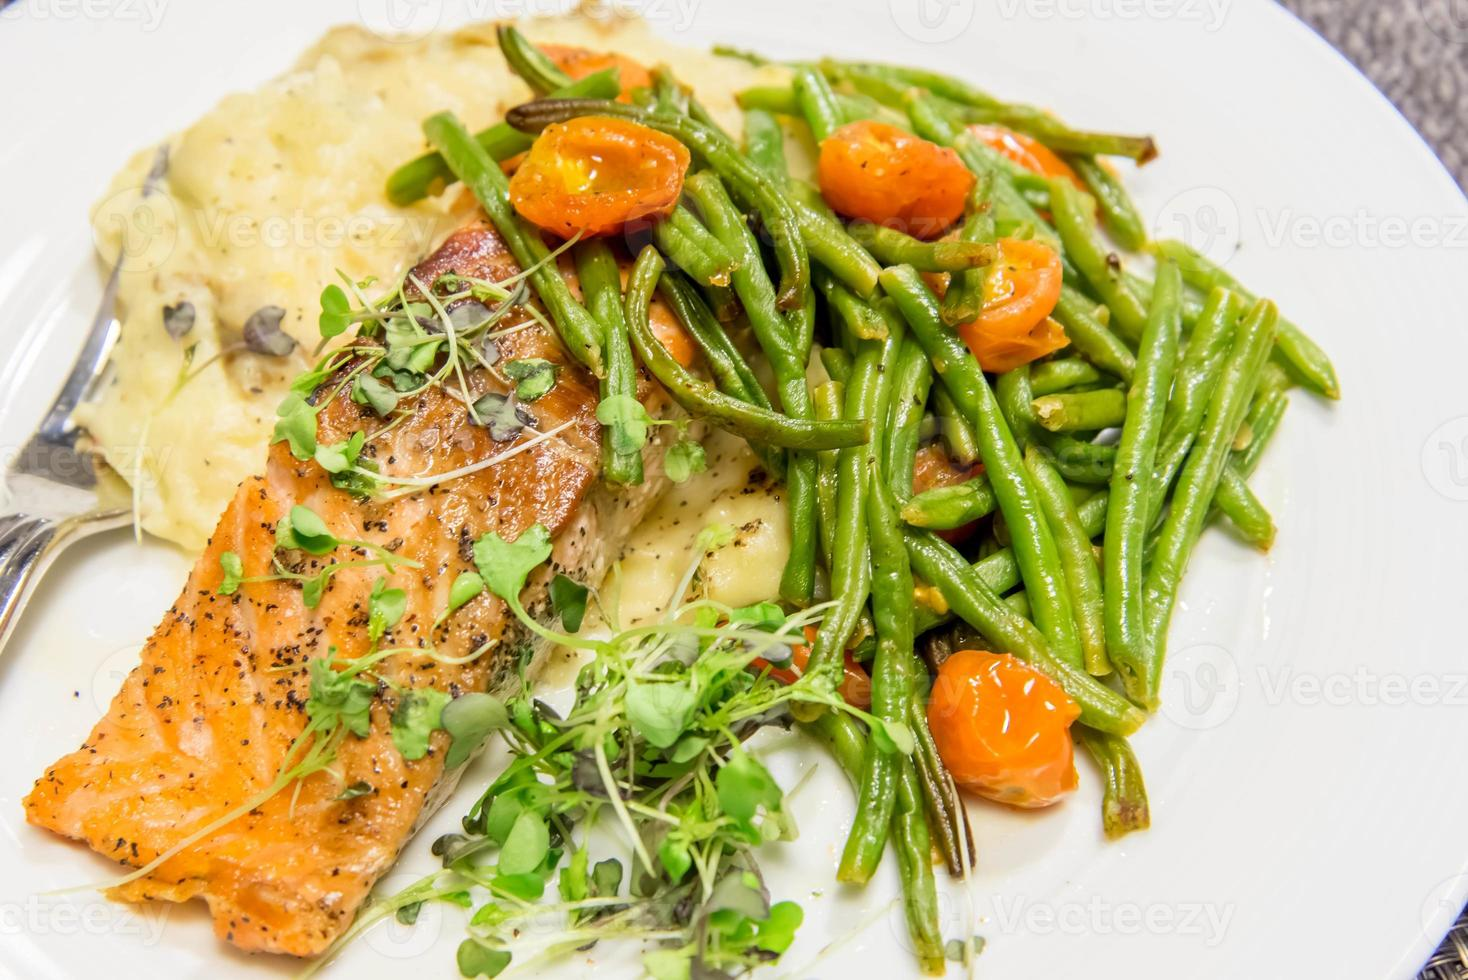 nutritious salmon dinner with green beans and tomatoes photo